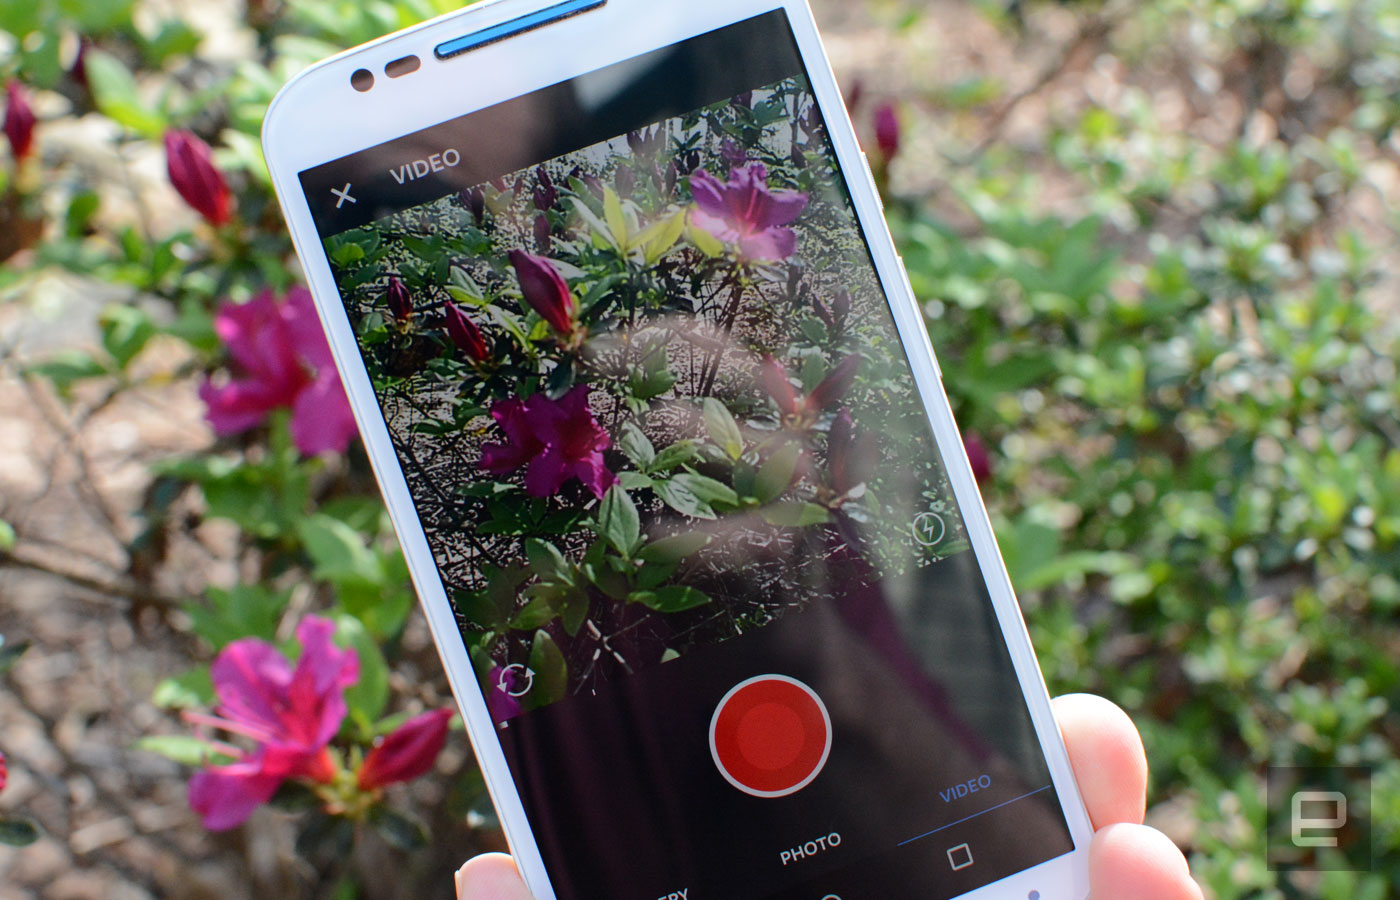 Instagram rolls out 60-second videos starting today